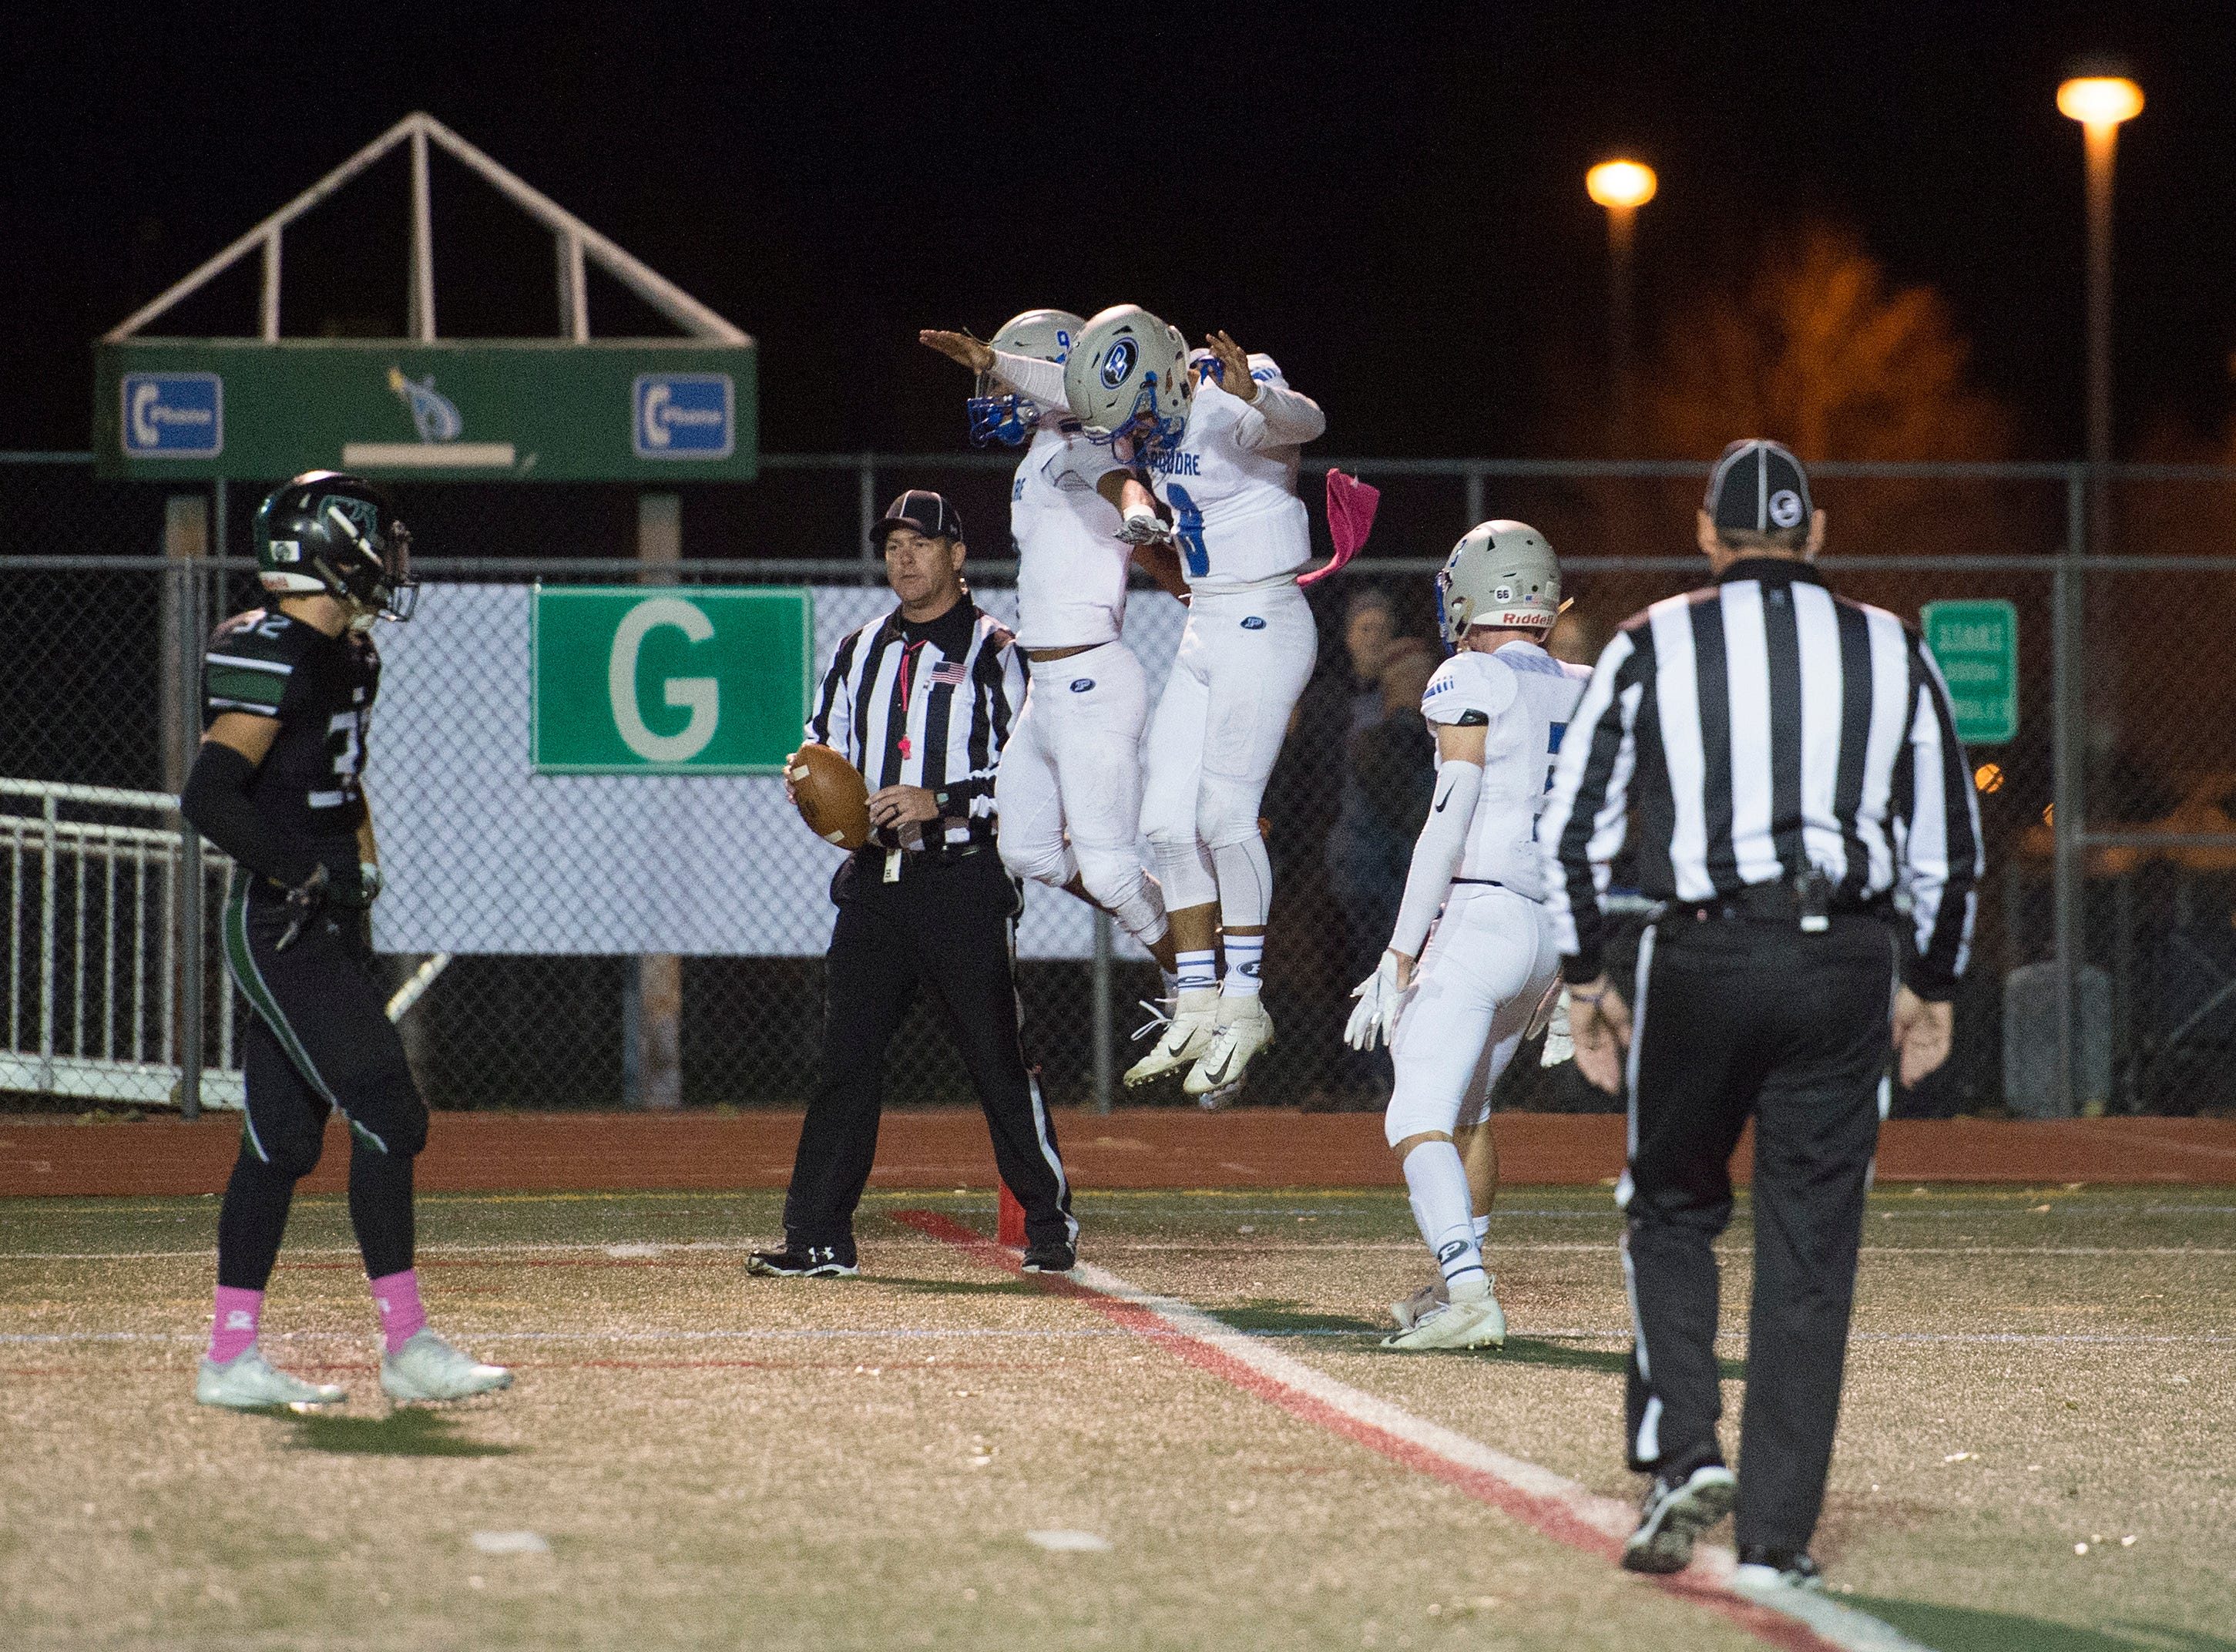 Poudre High School's Sergio Tarango and Duante Davis jump up in celebration after a touchdown from Davis in a game against Fossil Ridge at French Field on Friday, October 26, 2018.